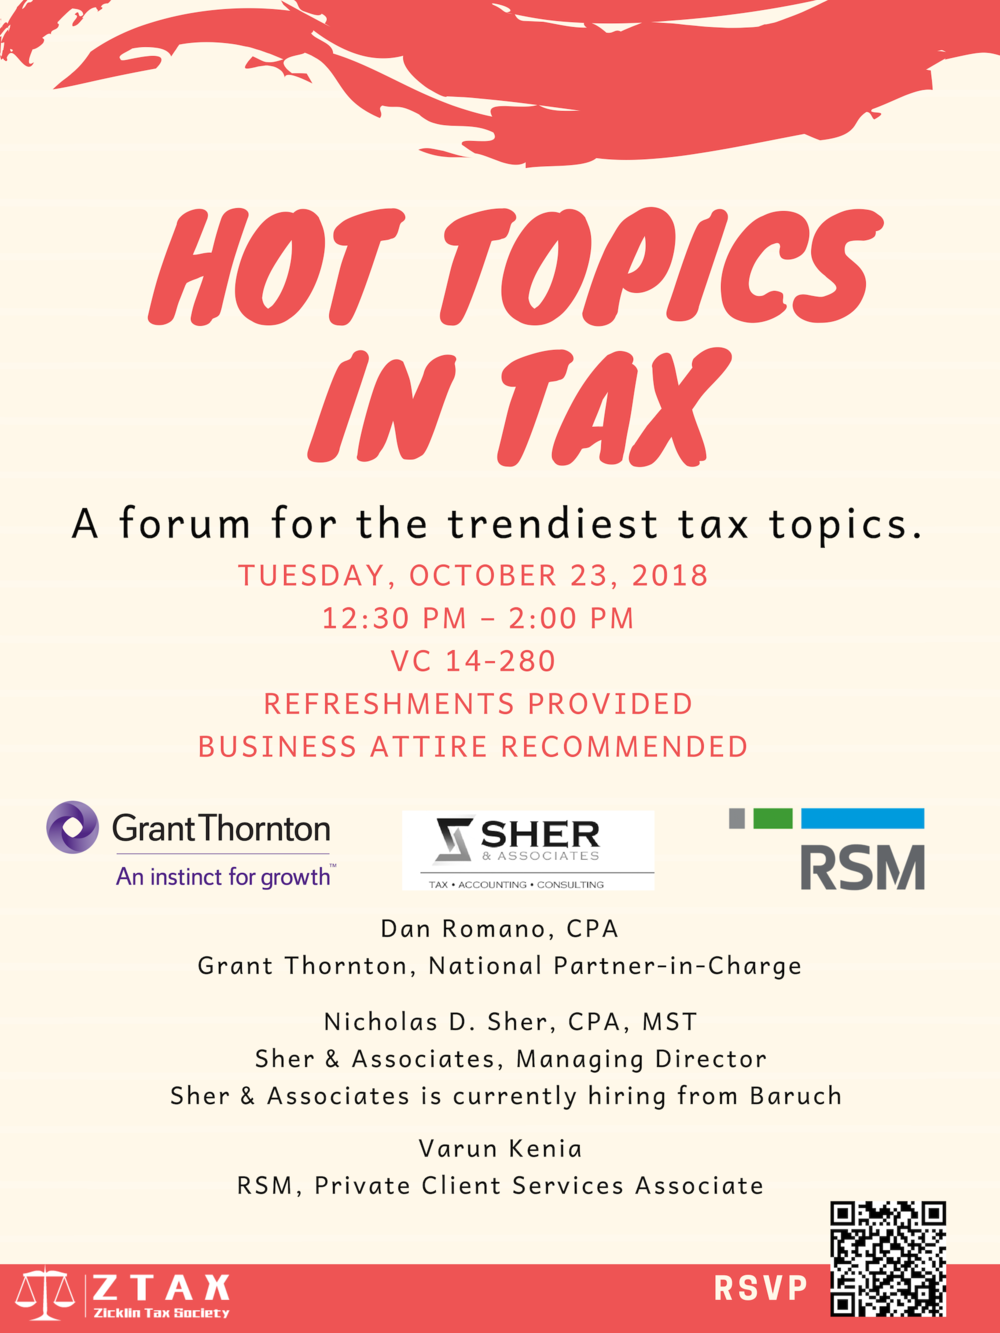 Copy of HOT TOPICS IN TAX (3).png